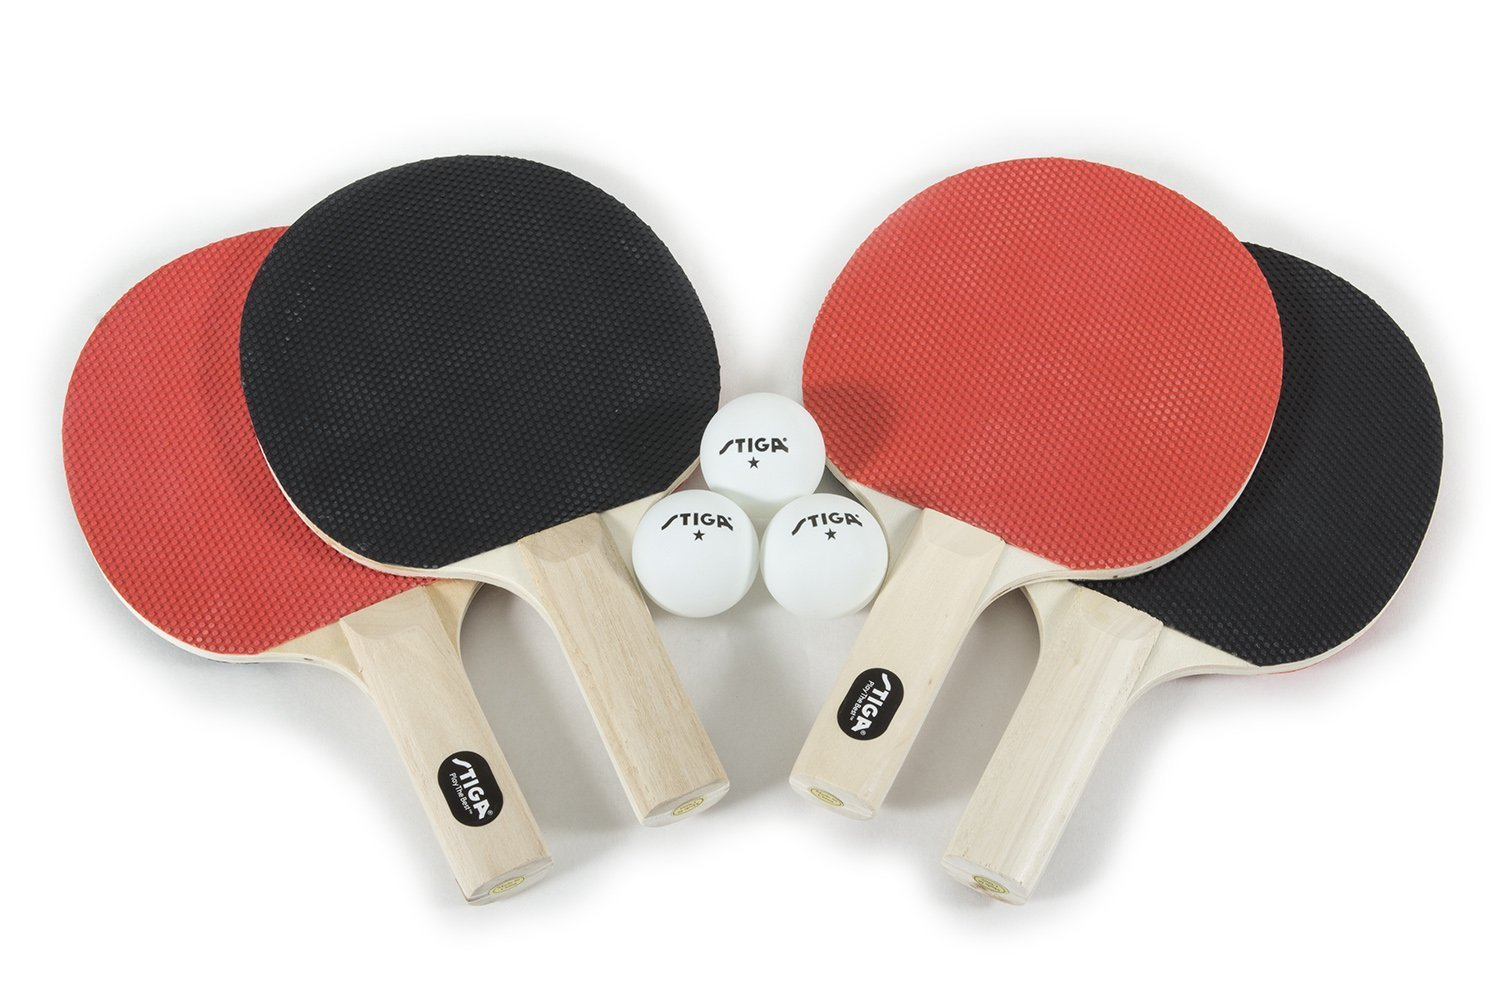 Senston Table Tennis Rackets Set,Professional Ping Pong Paddle Set for 4 Players Composite Rubber Ping Pong Paddle Indoor or Outdoor Games.